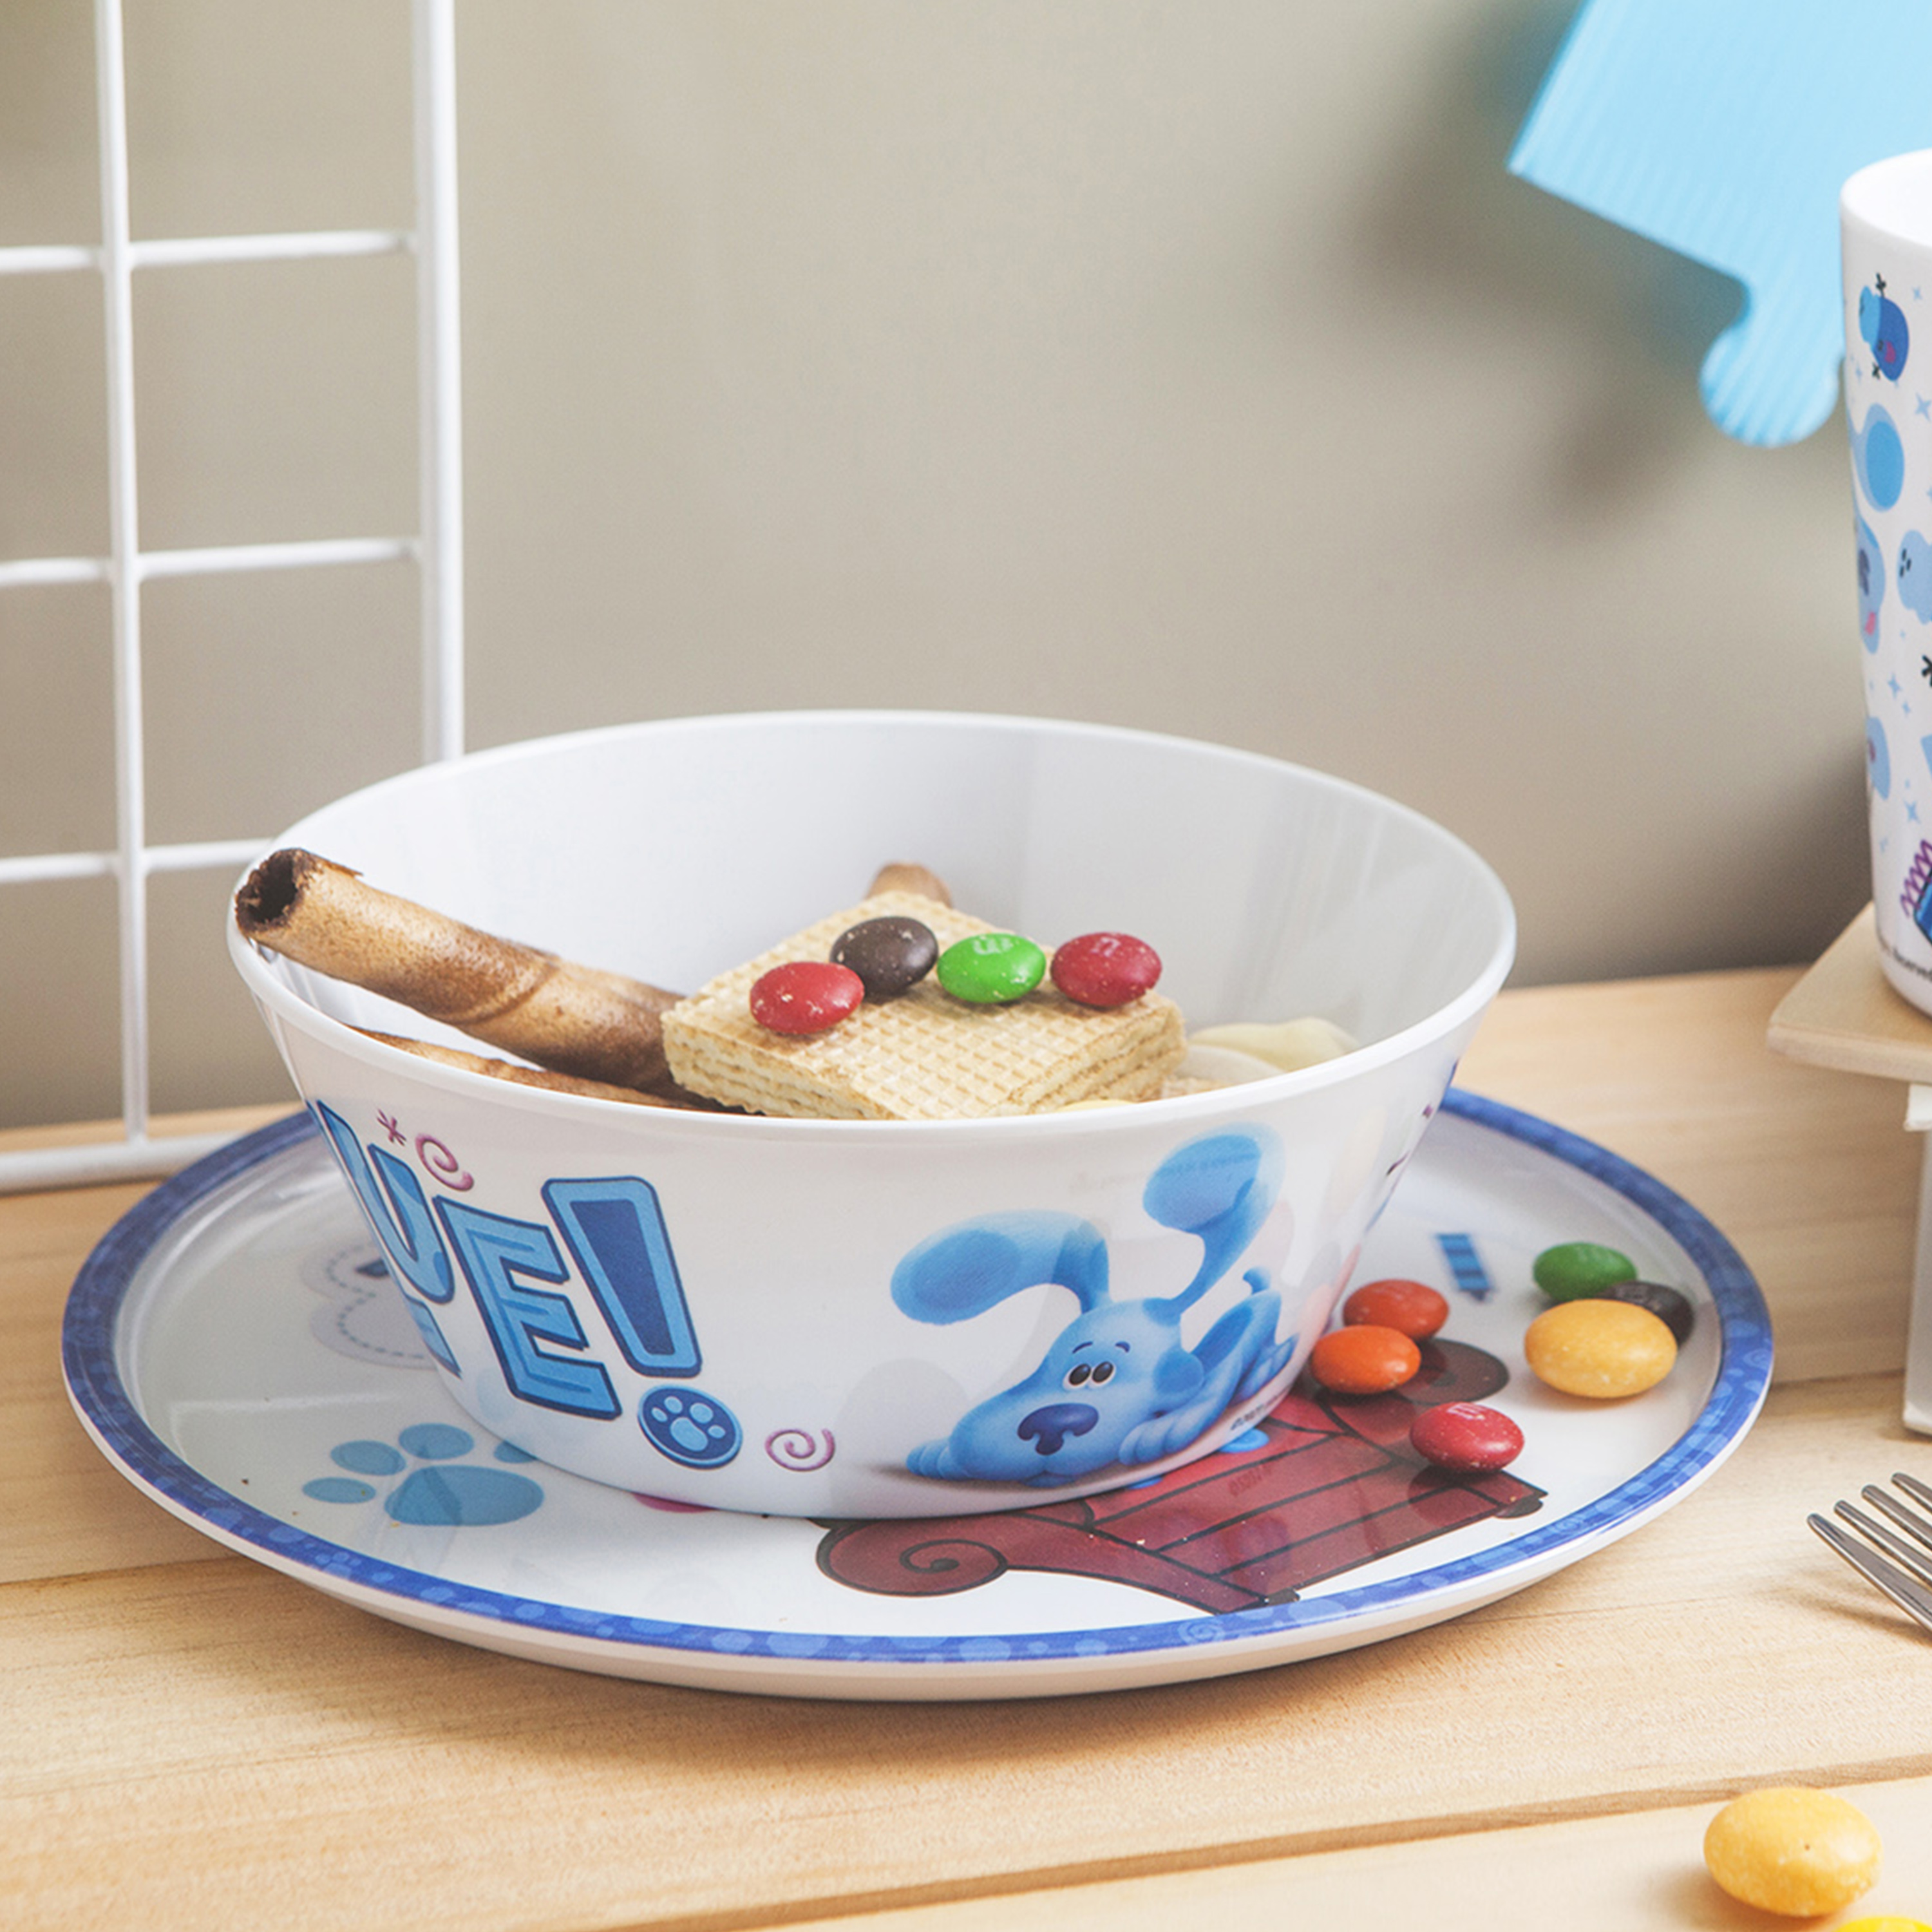 Blues Clues and You Kids Dinner Set, Blue and Friends, 5-piece set slideshow image 7